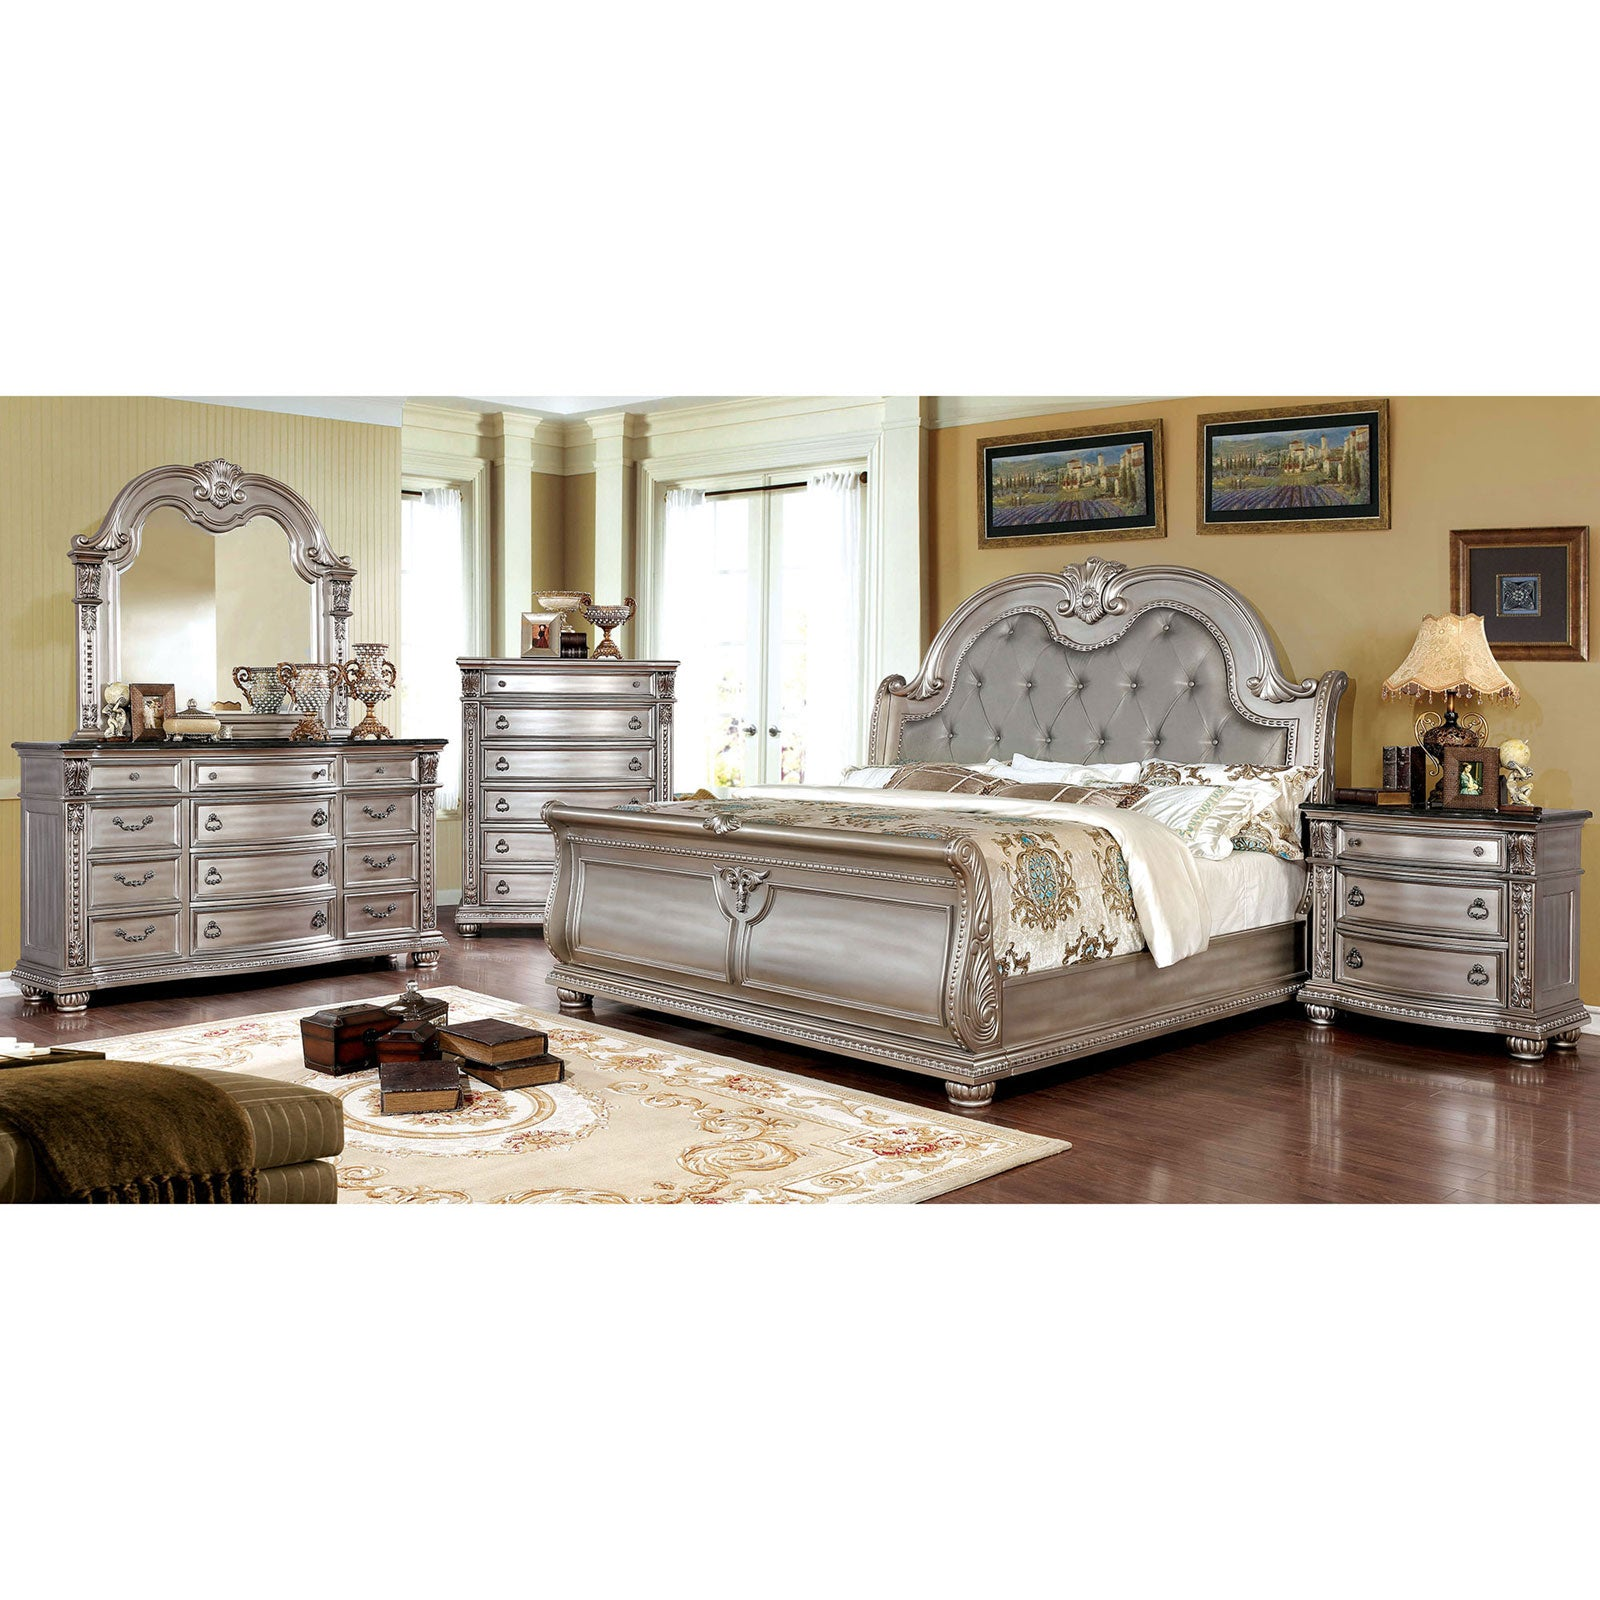 Fromberg 5 Pc. Queen Bedroom Set w- 2NS - InteriorDesignsToGo.com